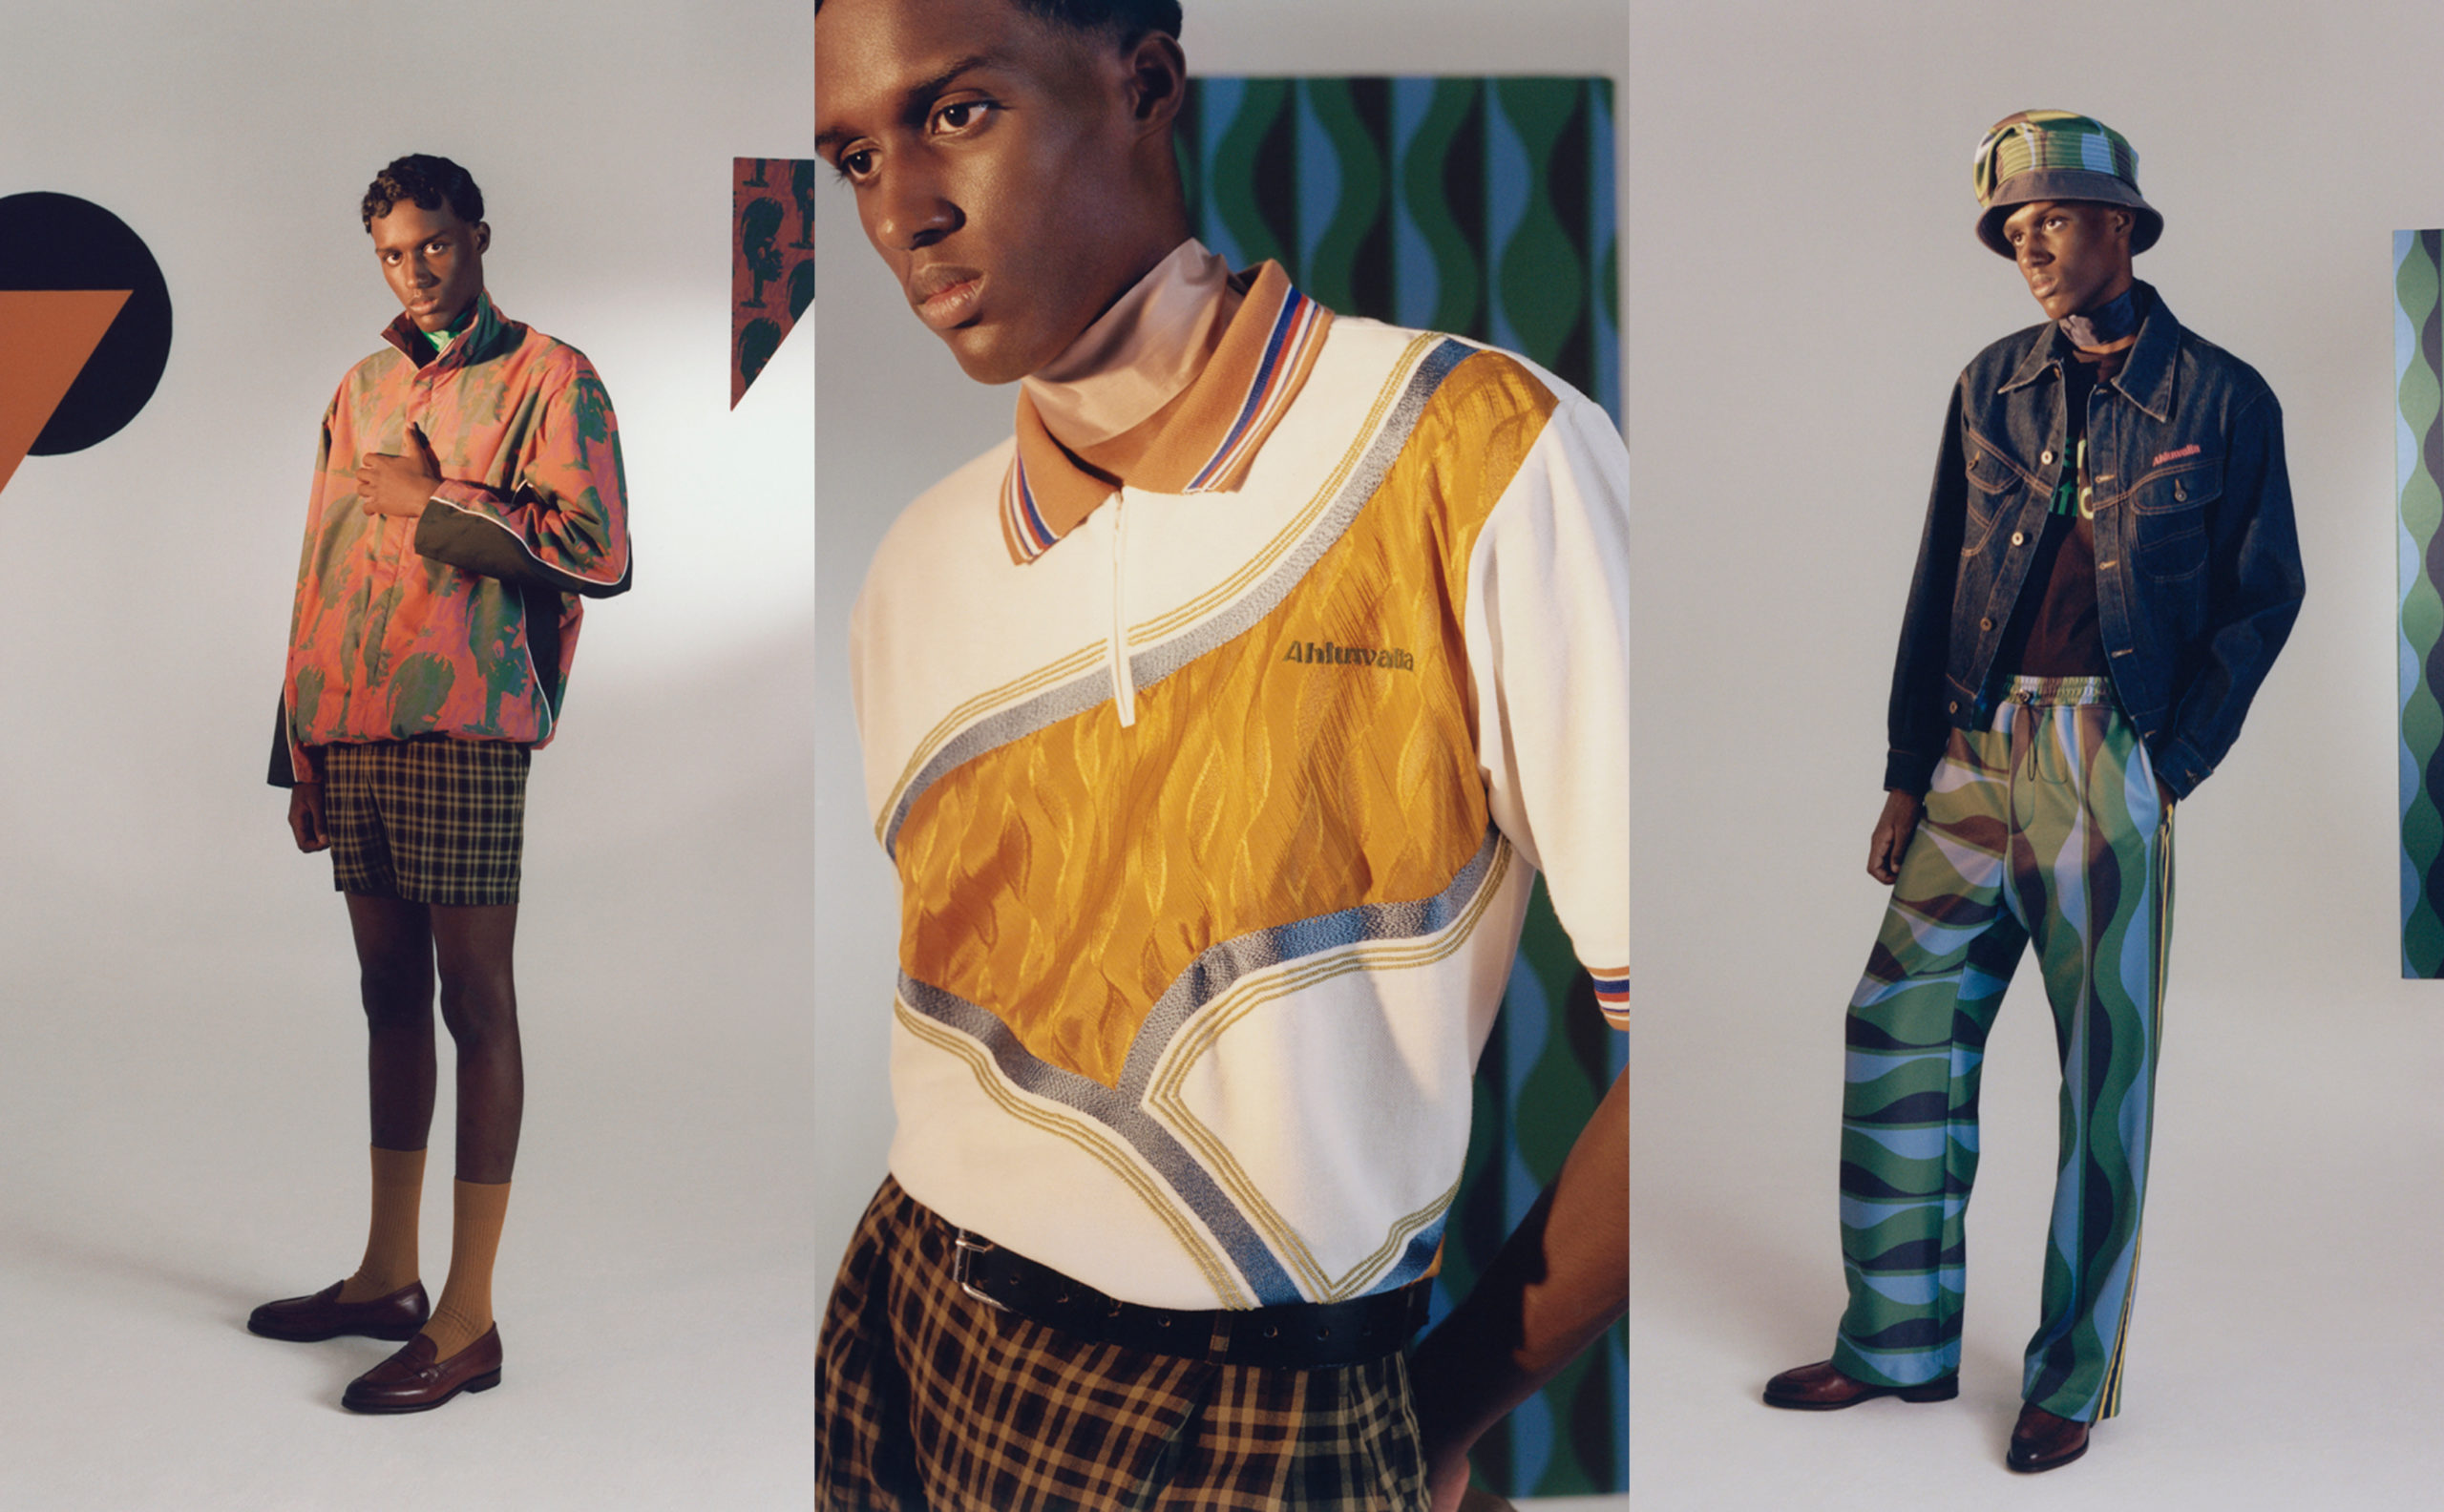 LFW: Ahluwalia Spring/Summer 2021 Collection